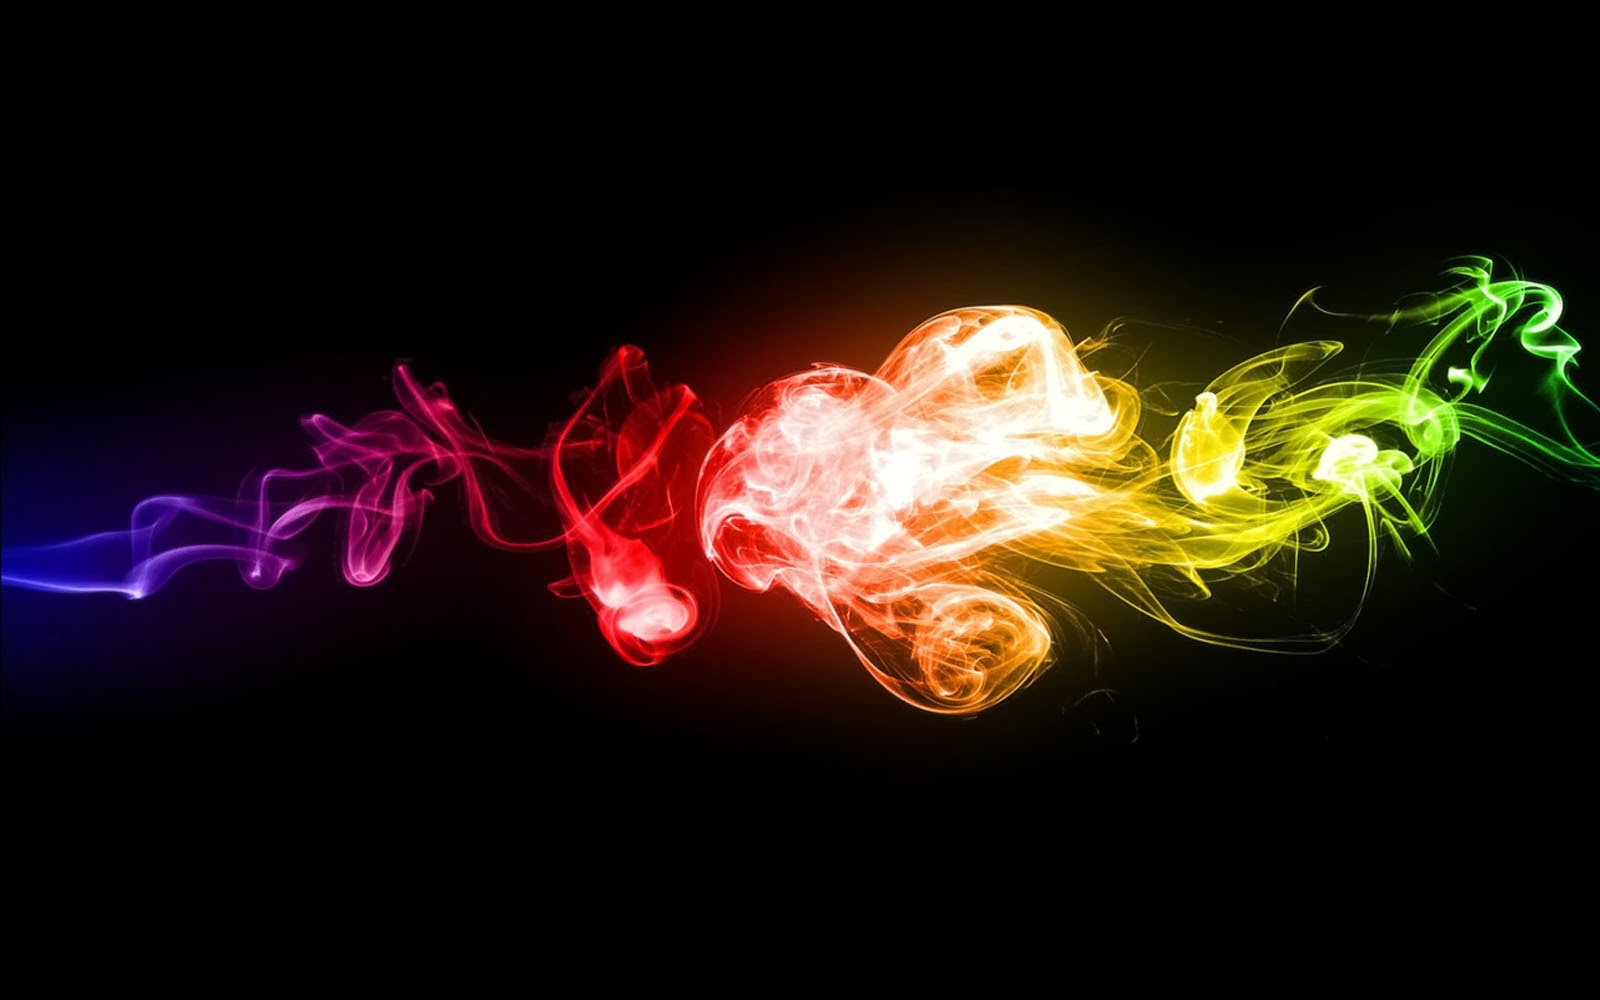 rainbow smoke wallpapers r - photo #31